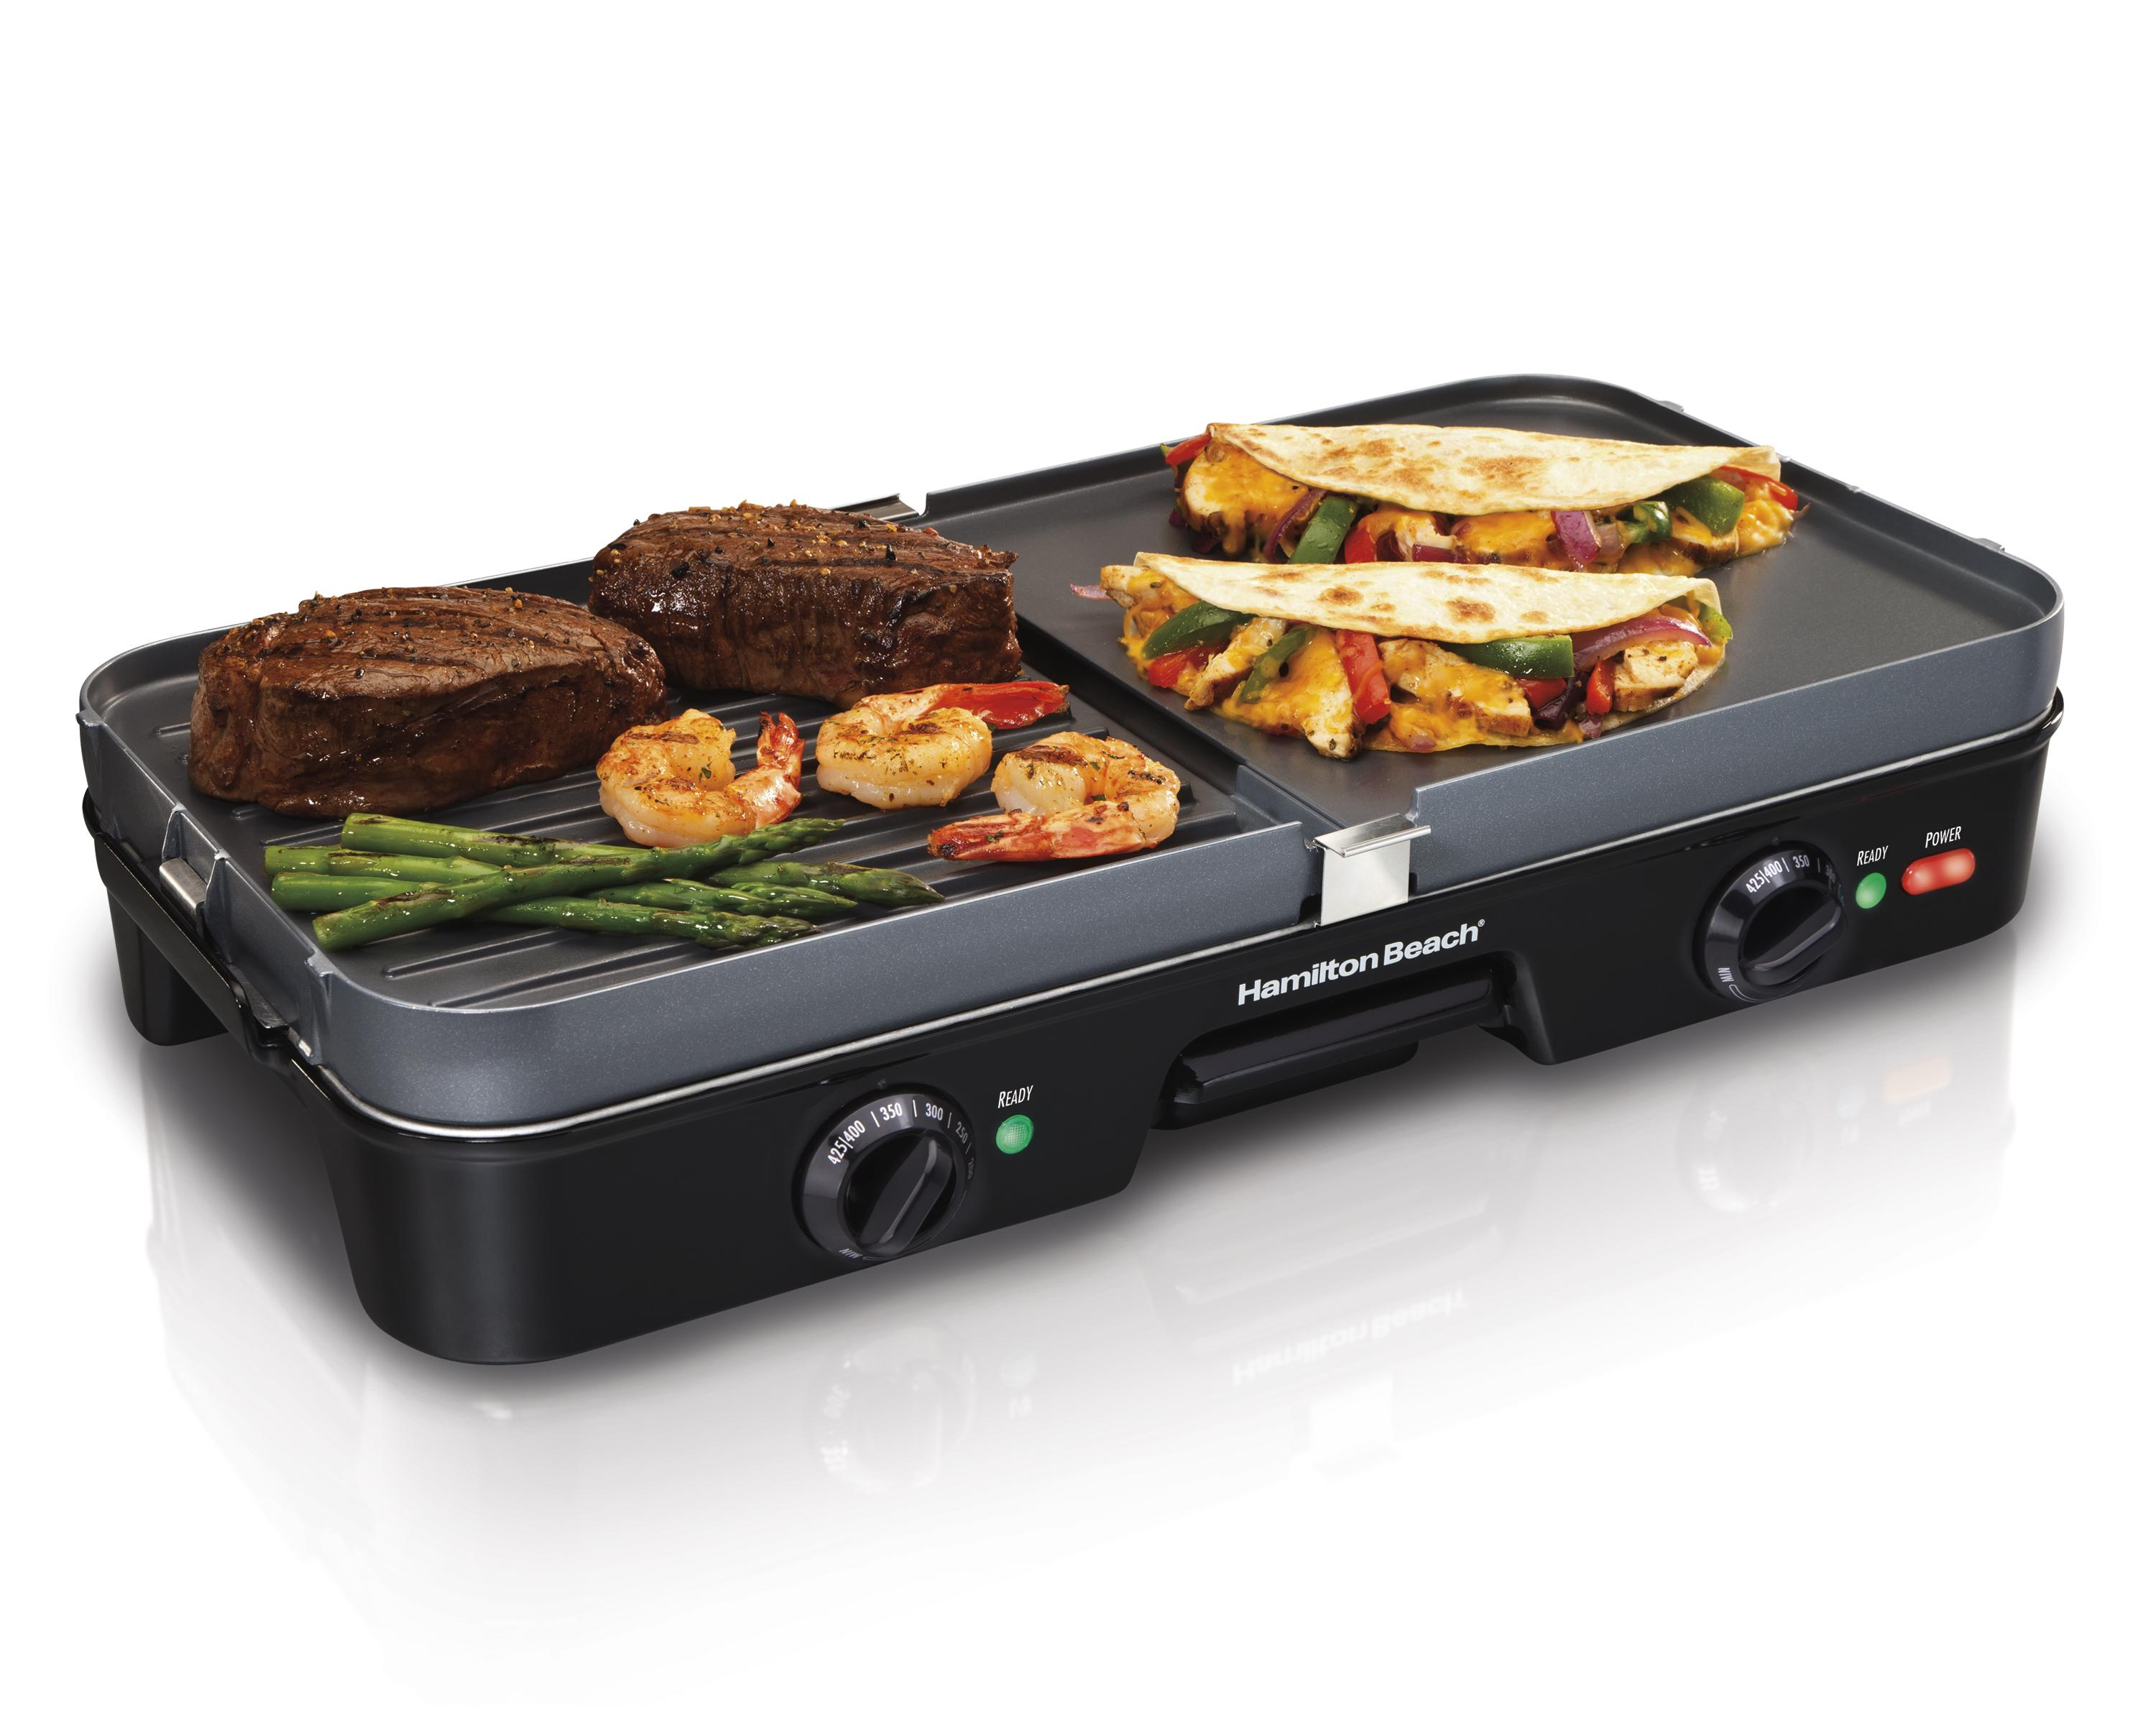 Amazon.com: Hamilton Beach 38546 3-in-1 Grill/Griddle ...